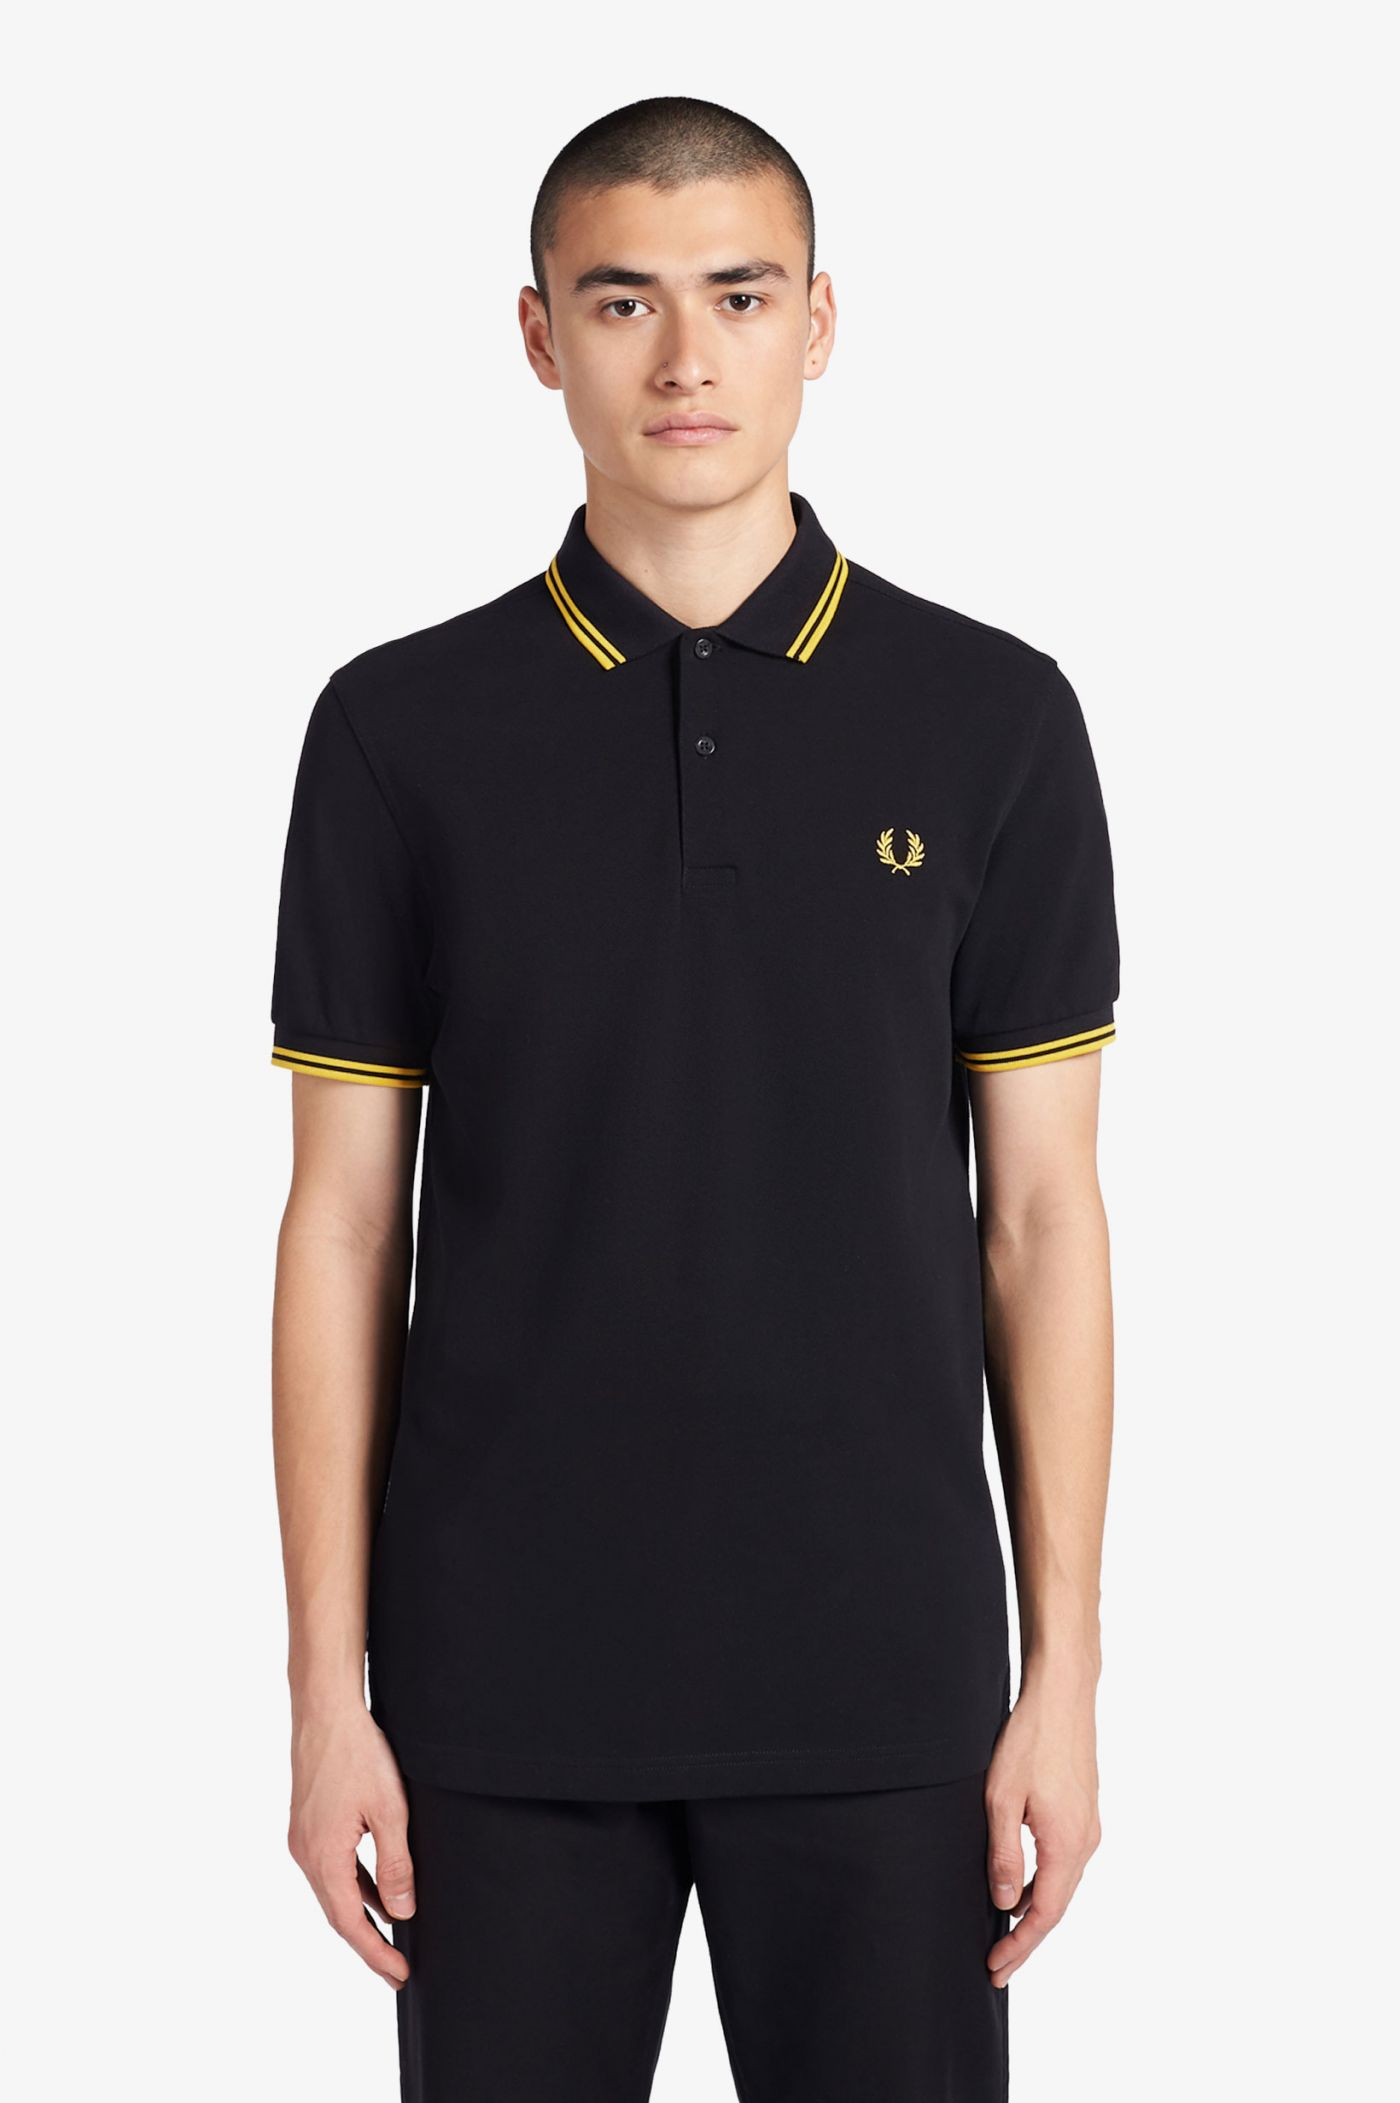 M3600 - Black / Yellow / Yellow | The Fred Perry Shirt | Men's ...